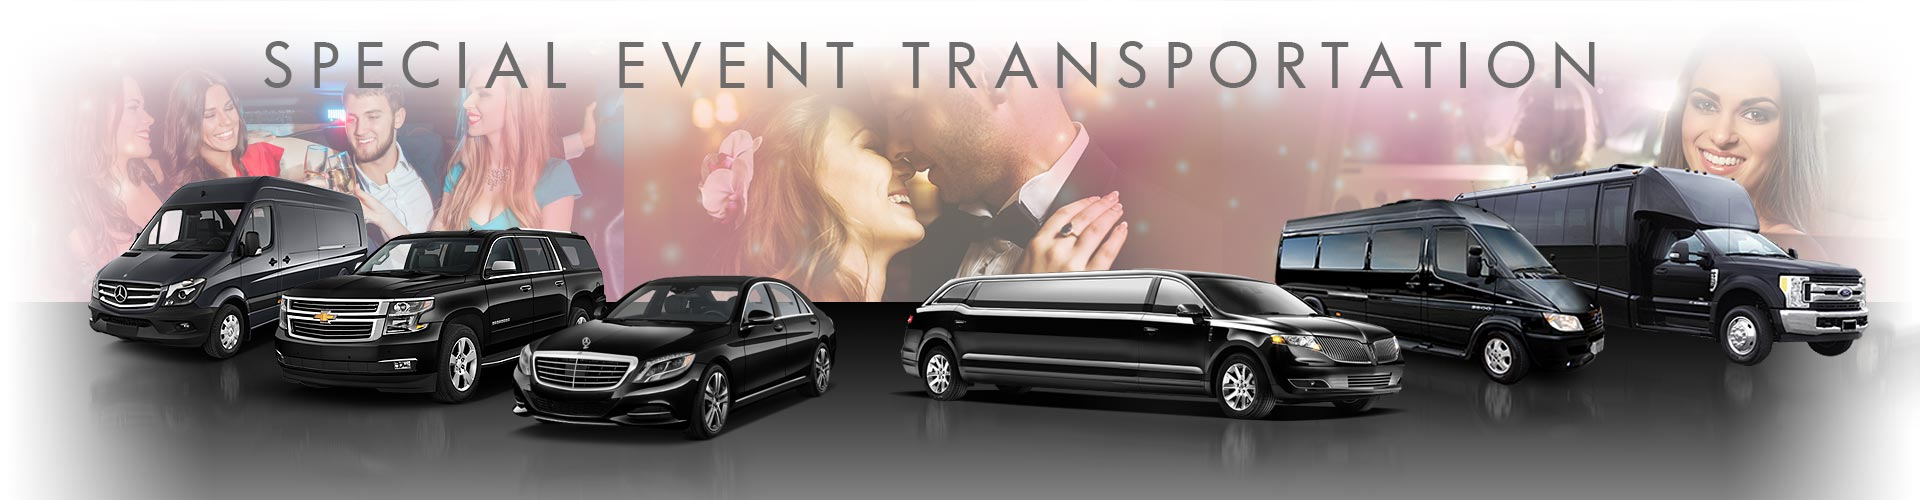 Westchester NYC Limousine Services